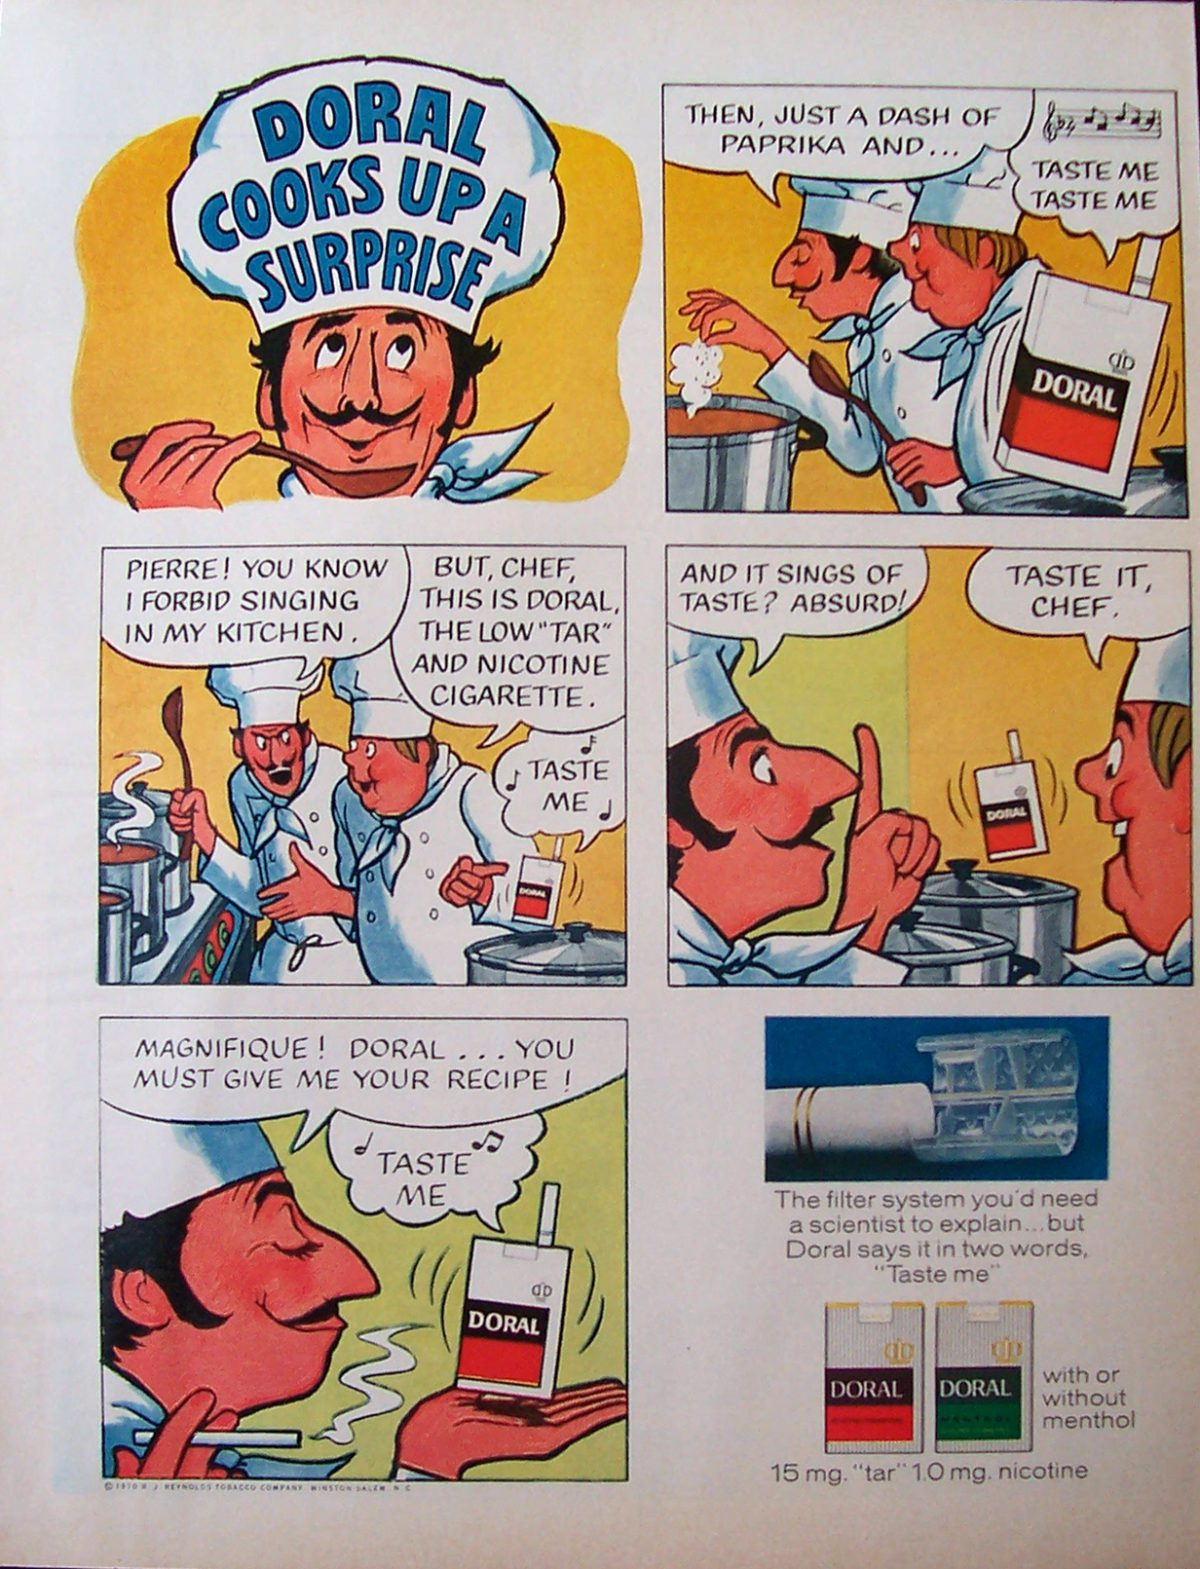 Doral cigarettes advertisement